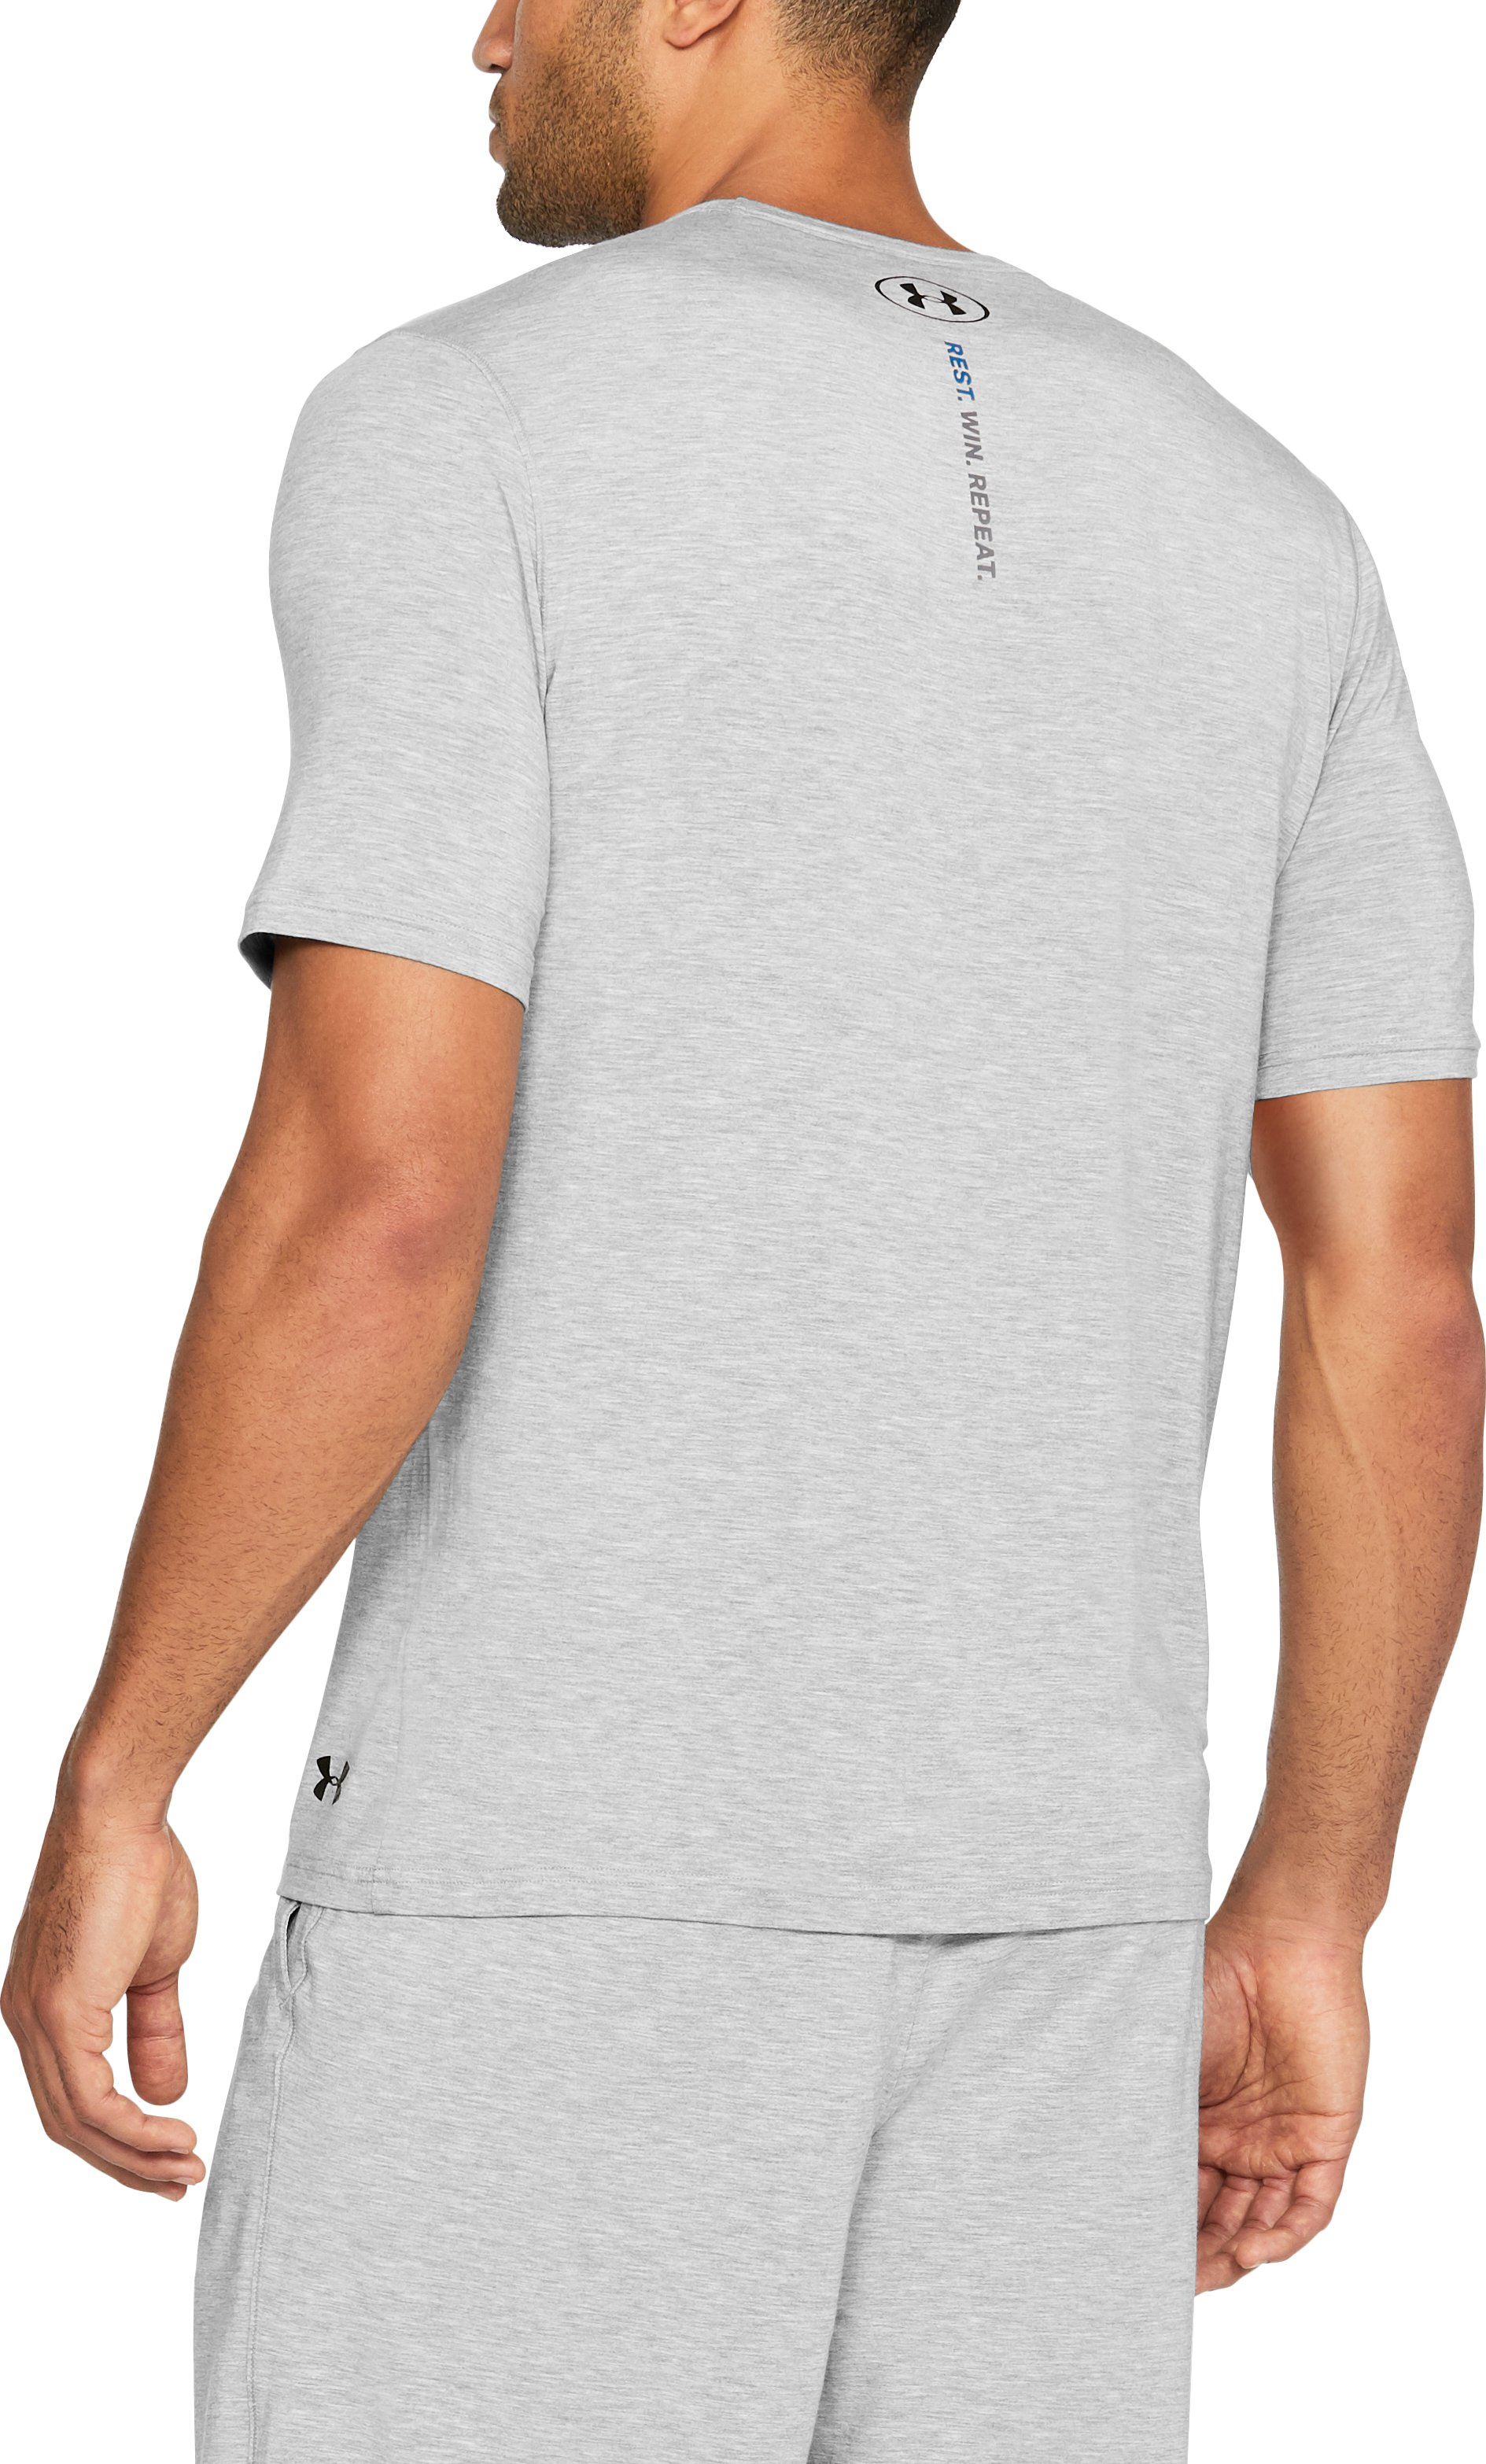 Men's Athlete Recovery Ultra Comfort Sleepwear Short Sleeve, True Gray Heather,